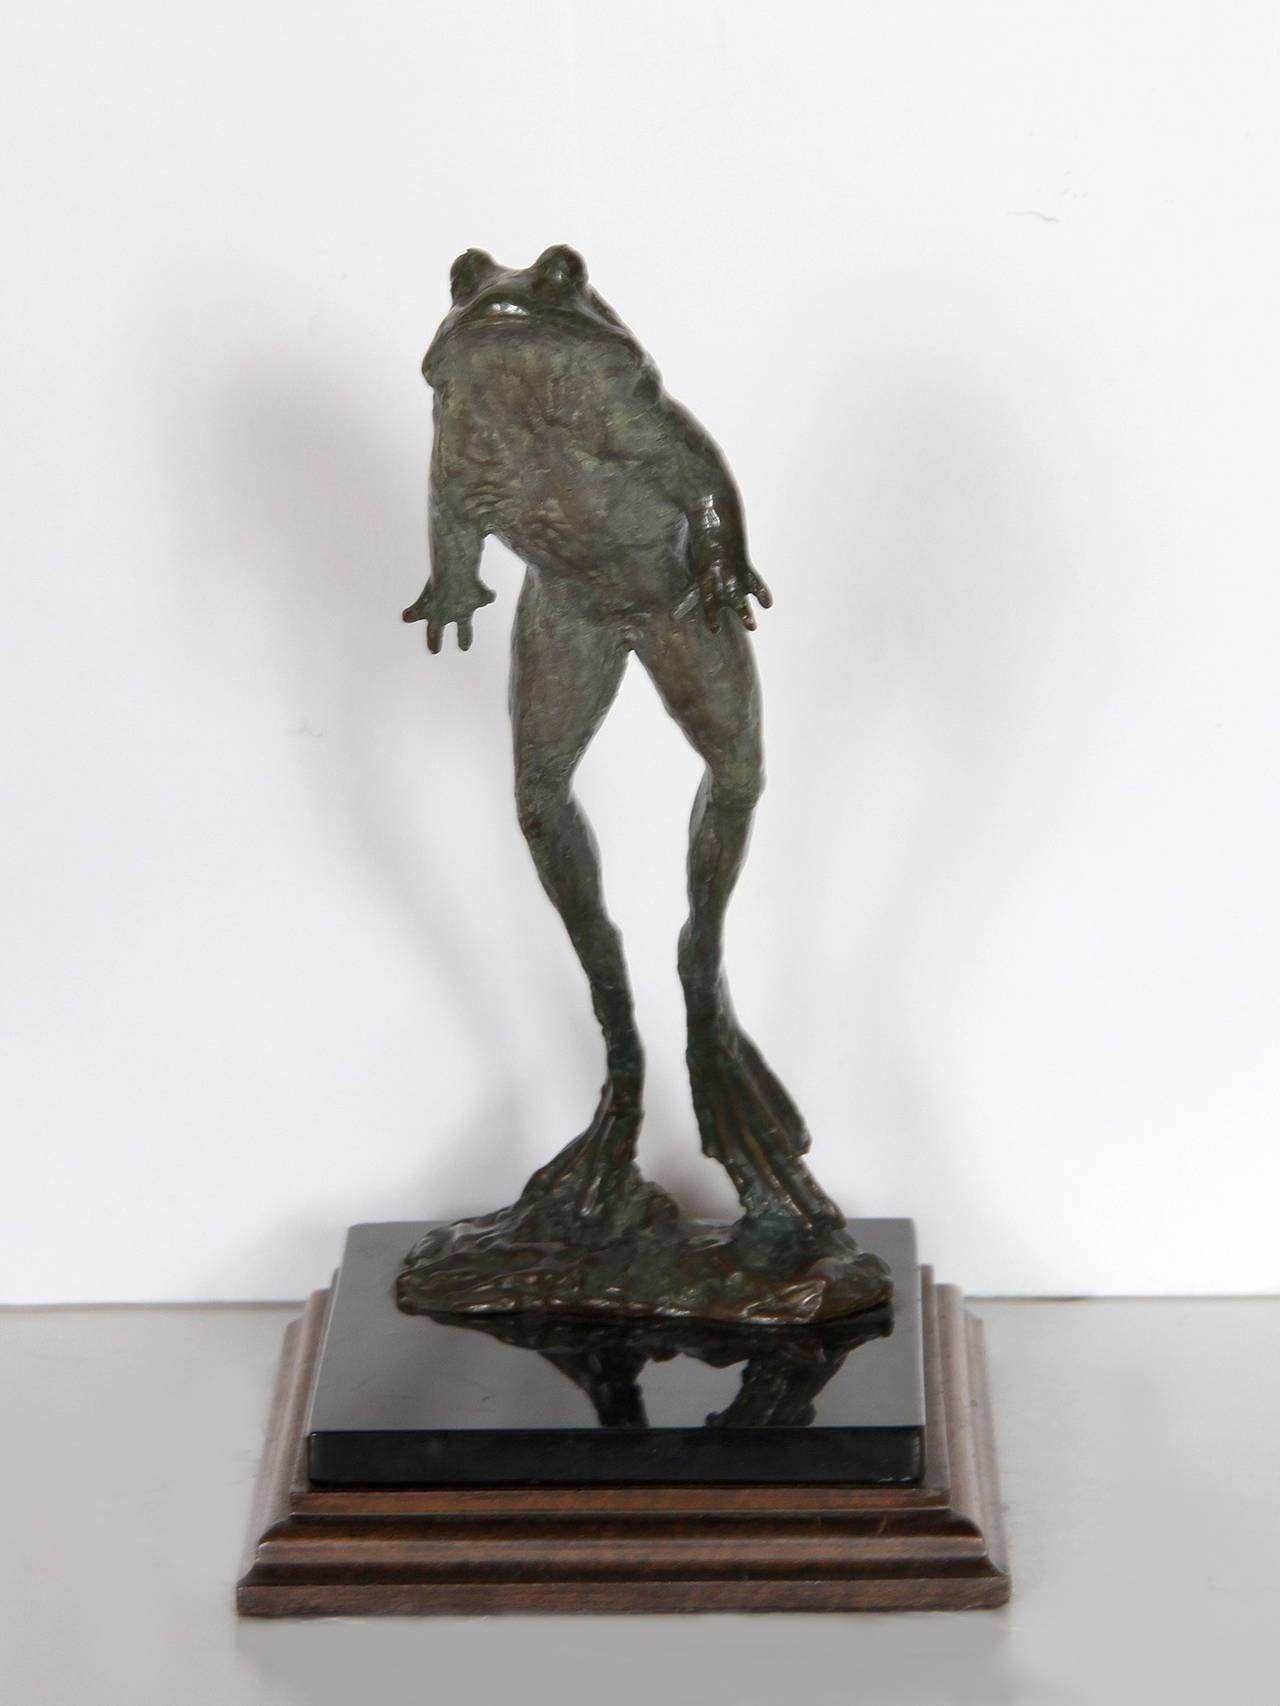 Leaping Frog For Sale 1